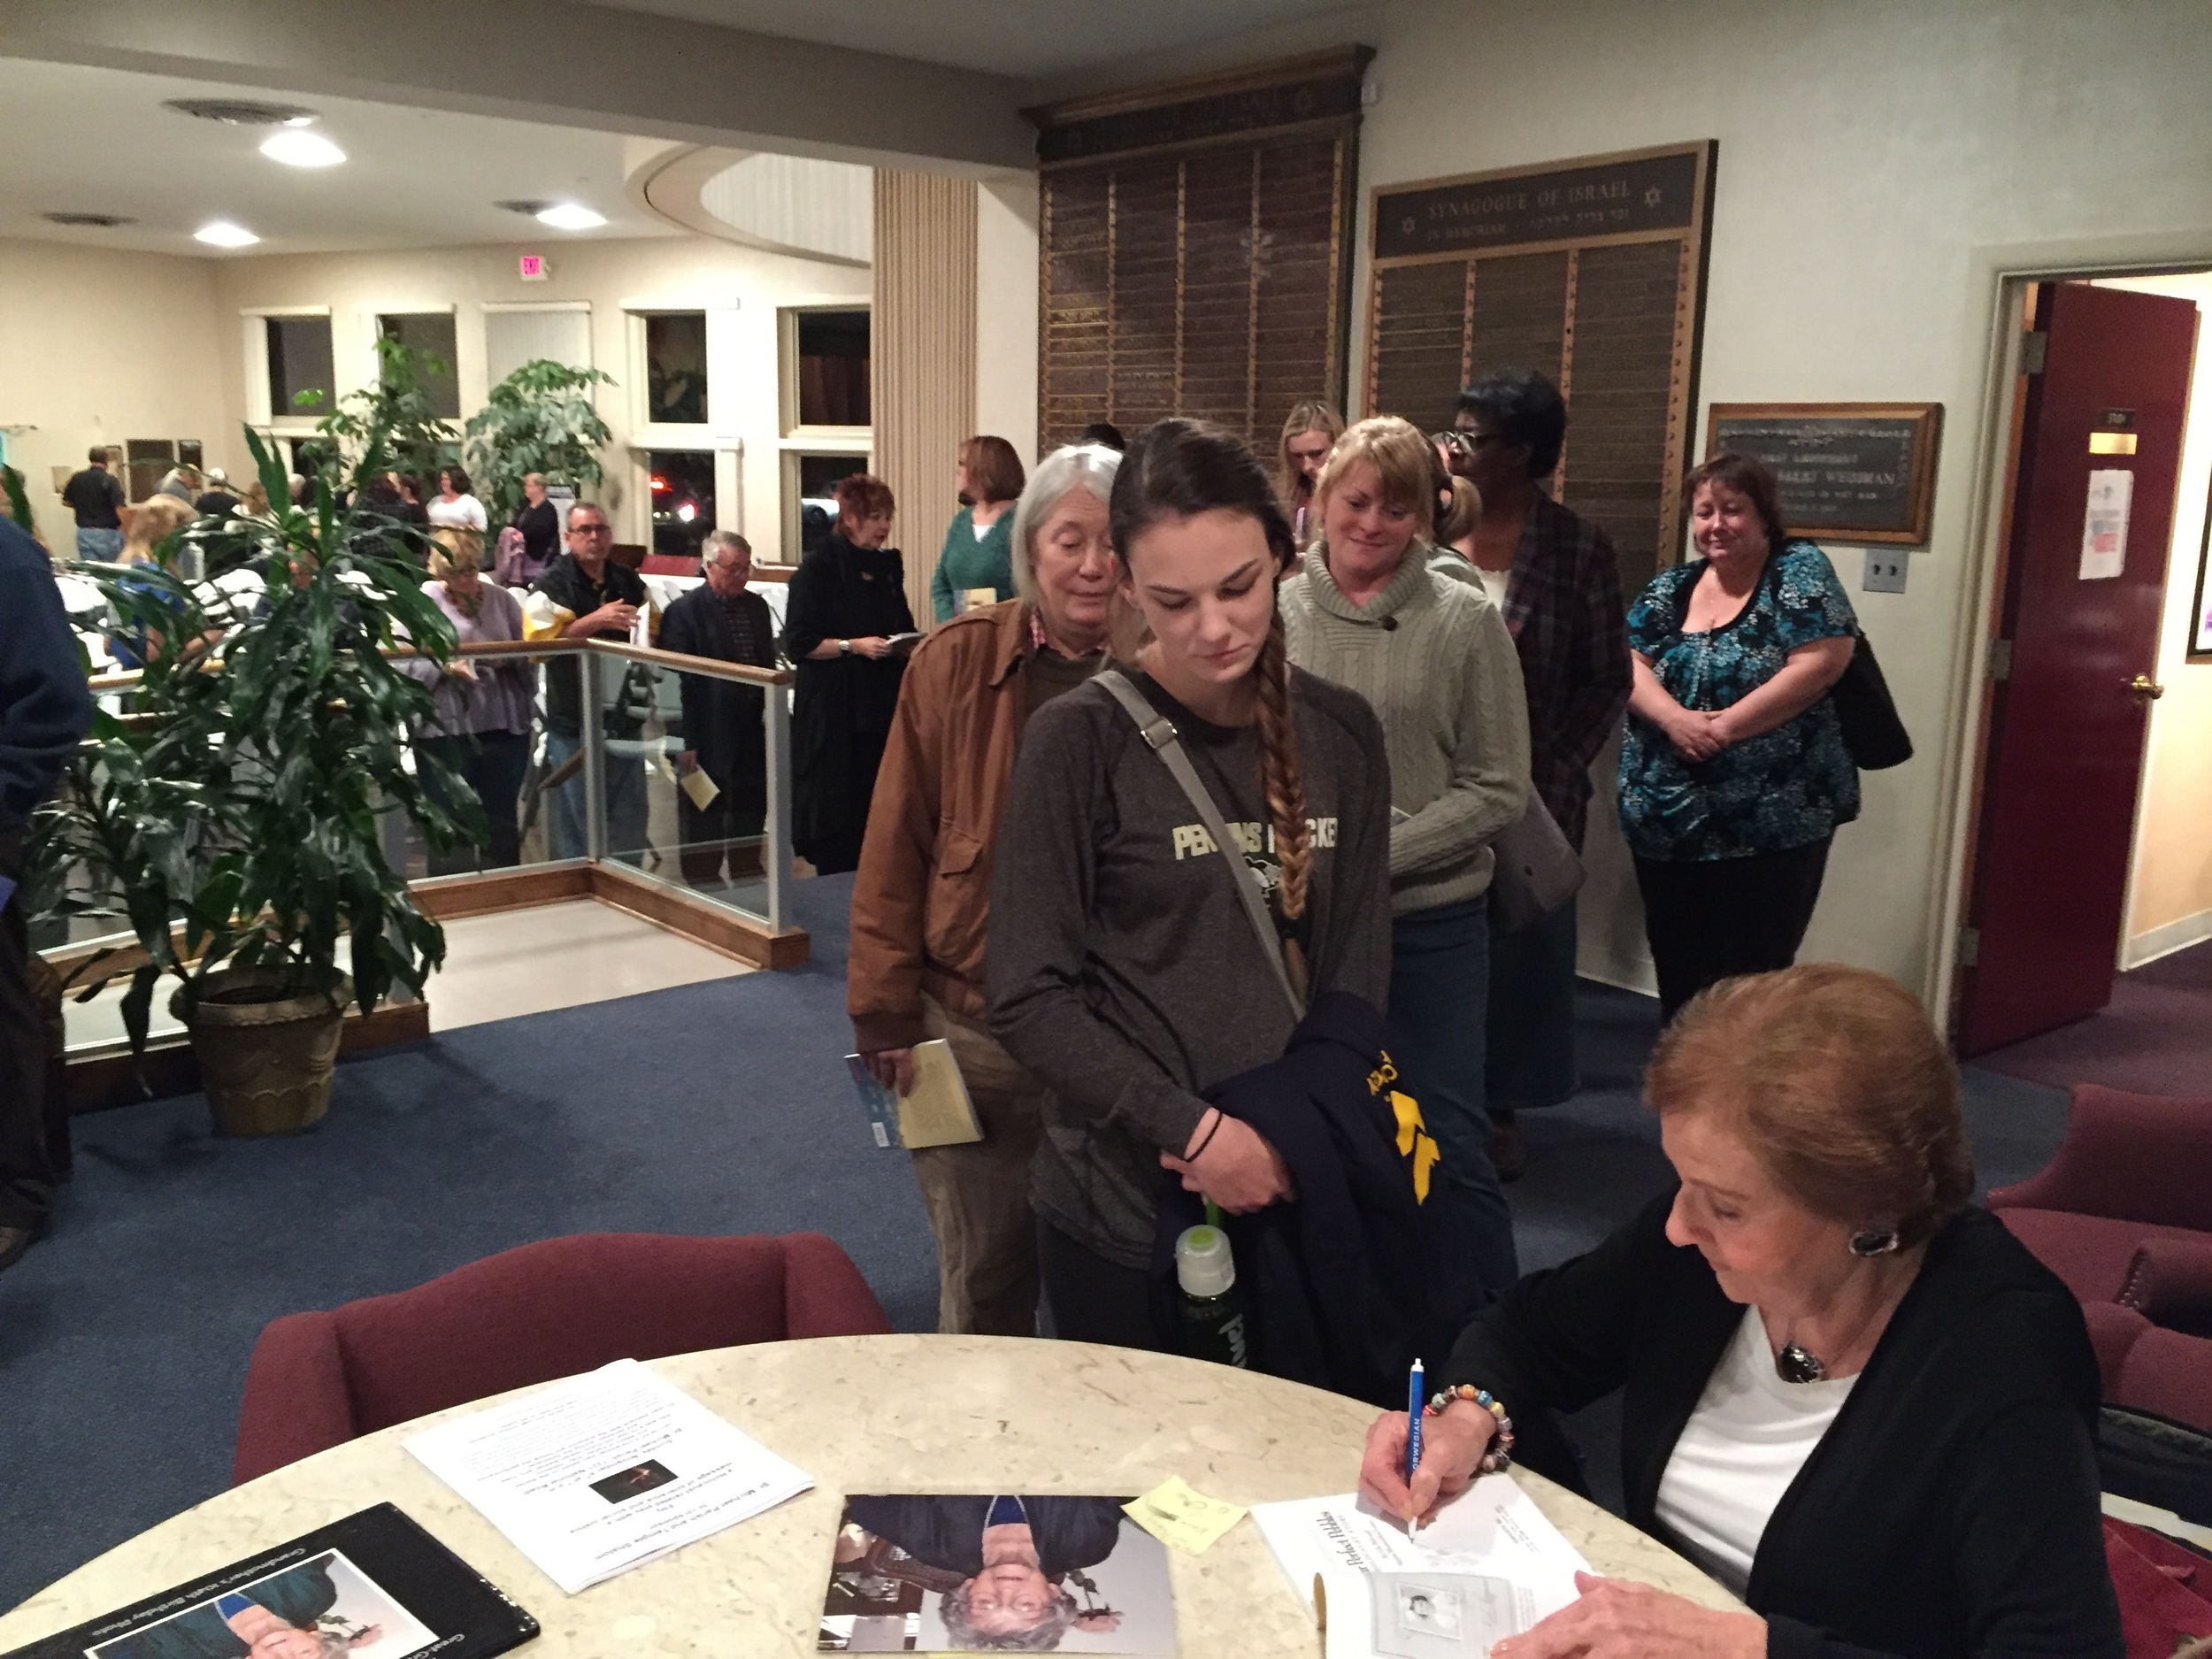 Marion Blumenthal Lazan autographs copies of her memoir, Four Perfect Pebbles, following her lecture Sunday at Temple Shalom.